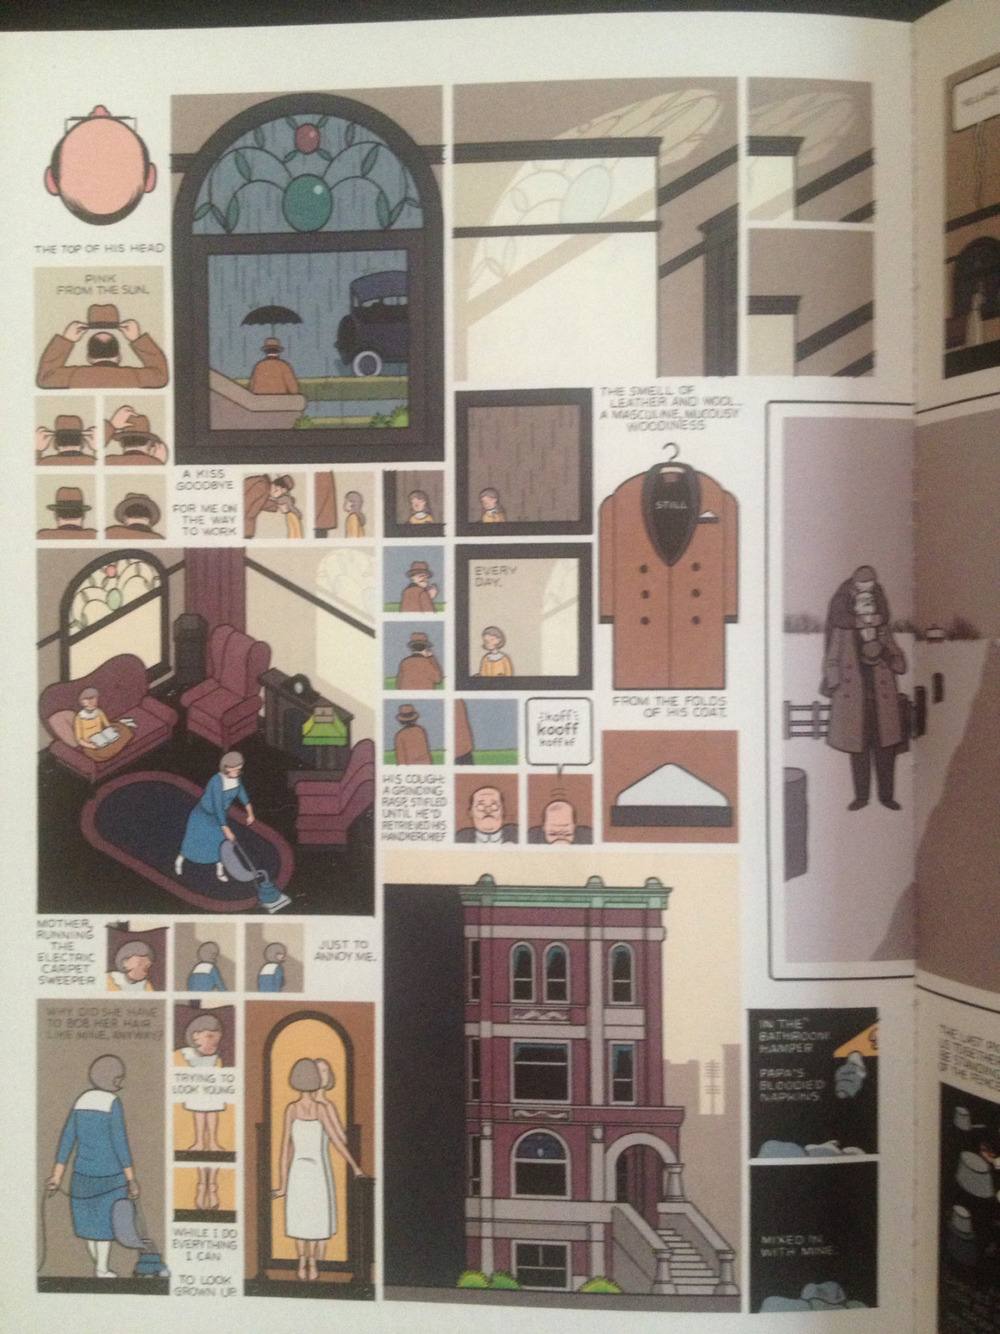 'Untitled' by Chris Ware. Granta 106